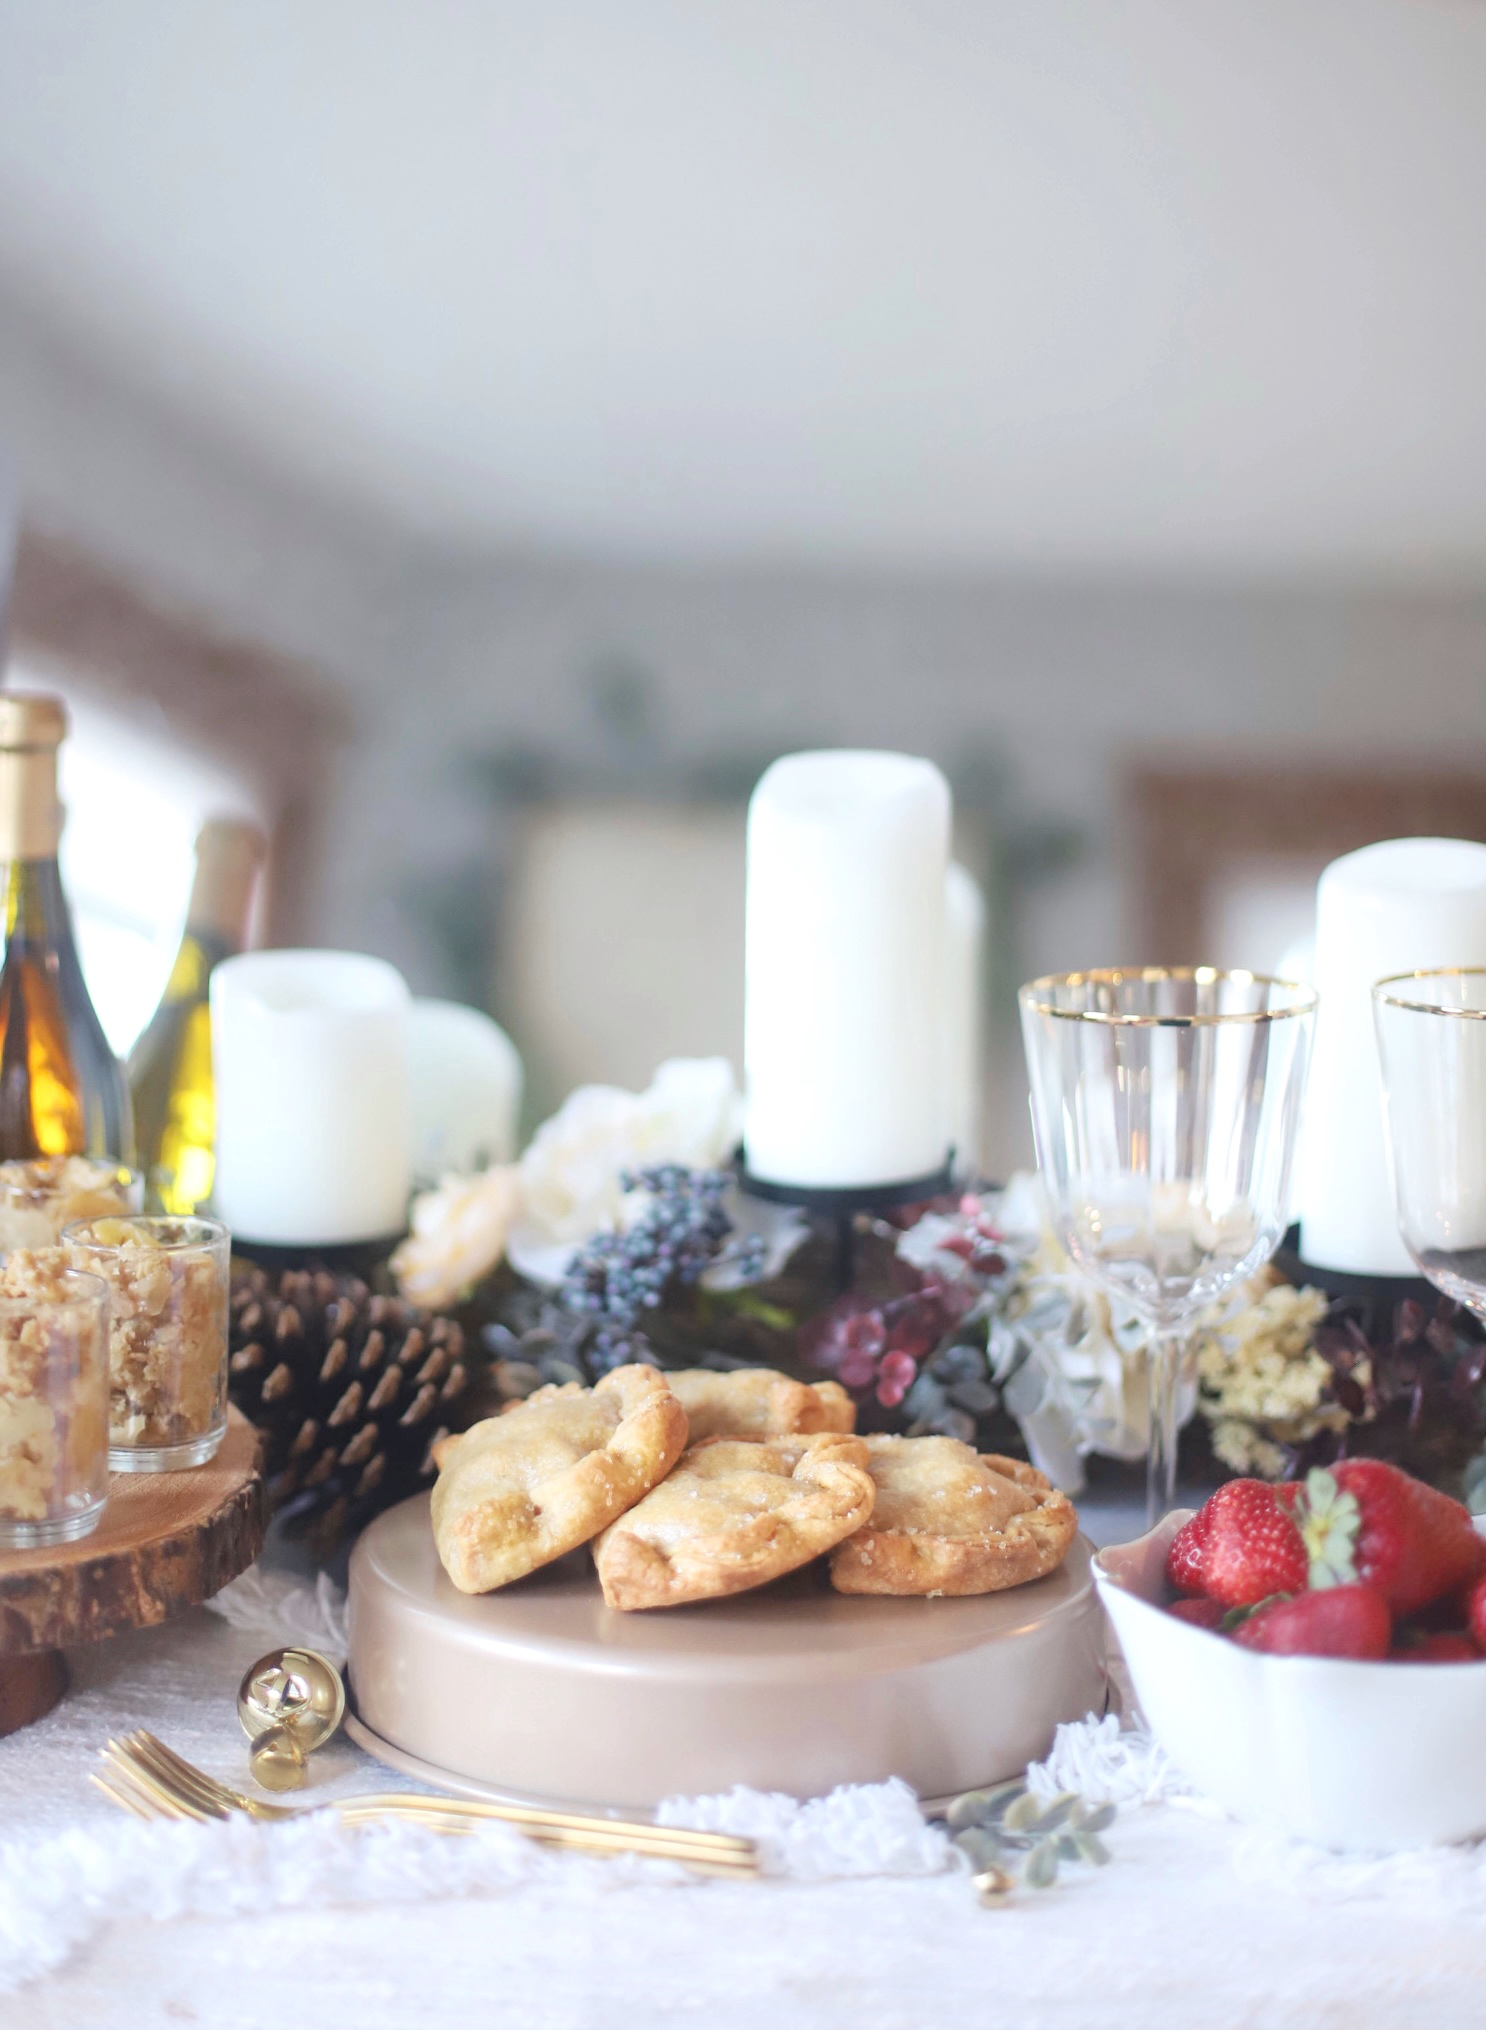 If you love a good dessert buffet, you will love this simple and beautiful woodland winter holiday dessert bar for your next festive Christmas or Hanukkah celebration! | @glitterinclexi | GLITTERINC.COM